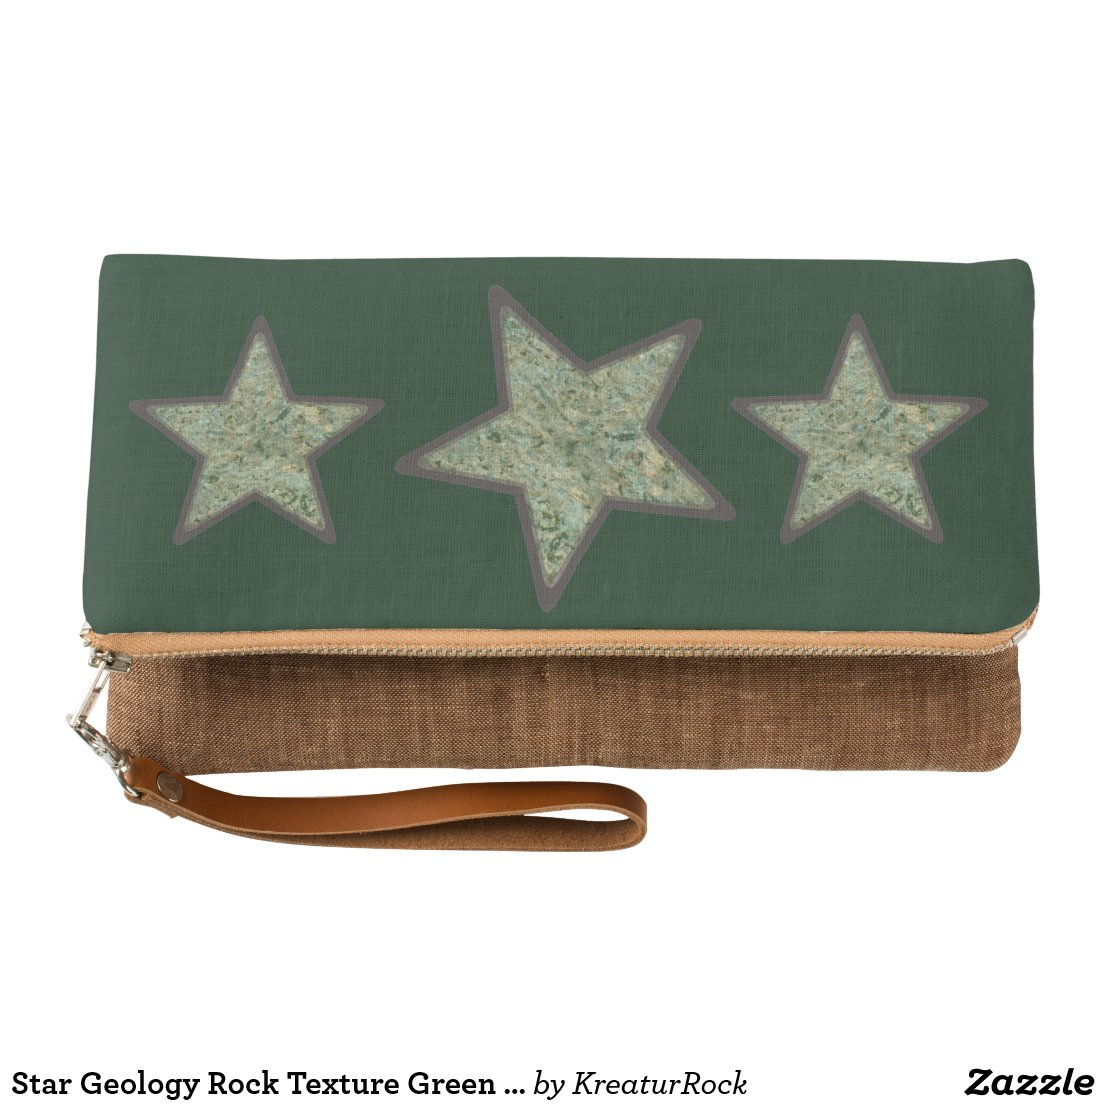 Star Geology Rock Texture Green with any Color